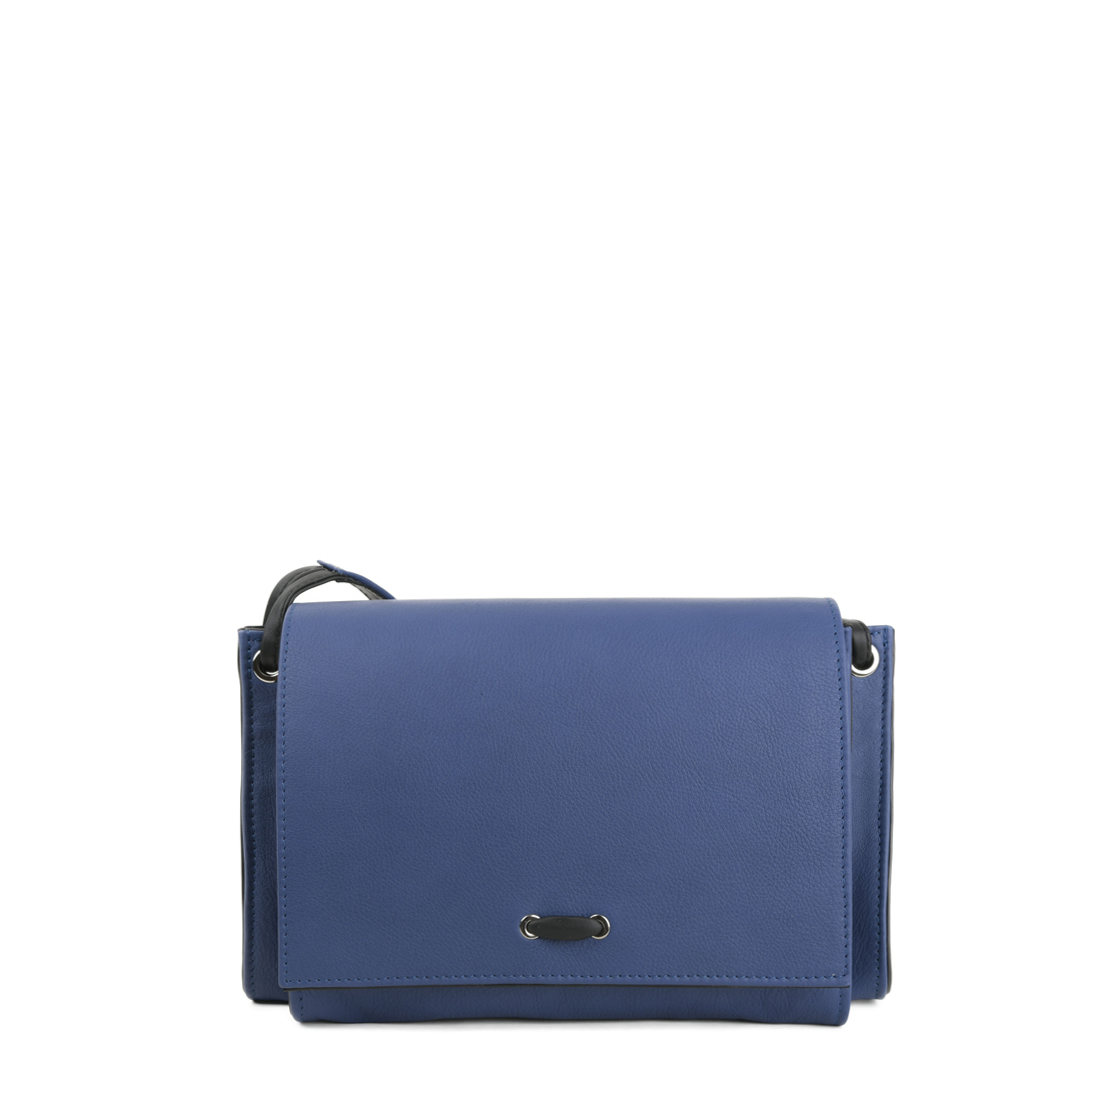 Isobel Blue Leather Across Body Bag